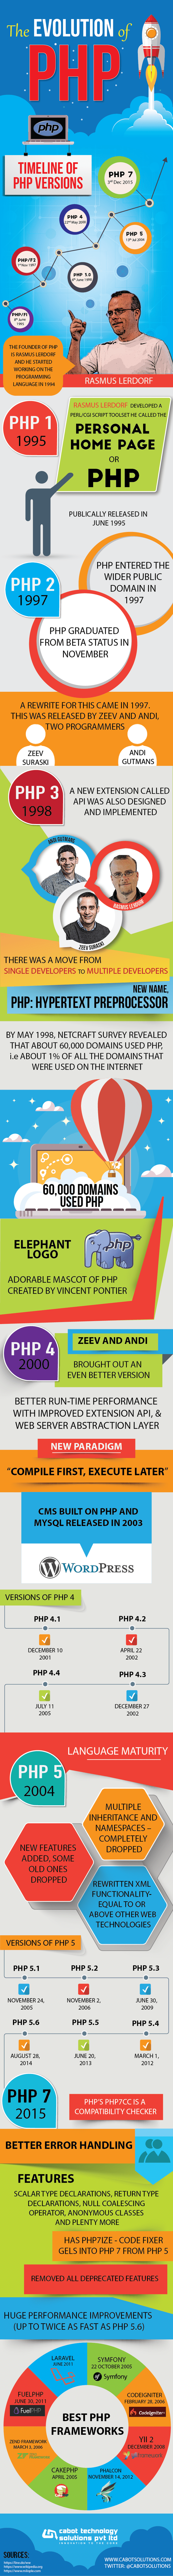 Evolution-of-php-01-01-min